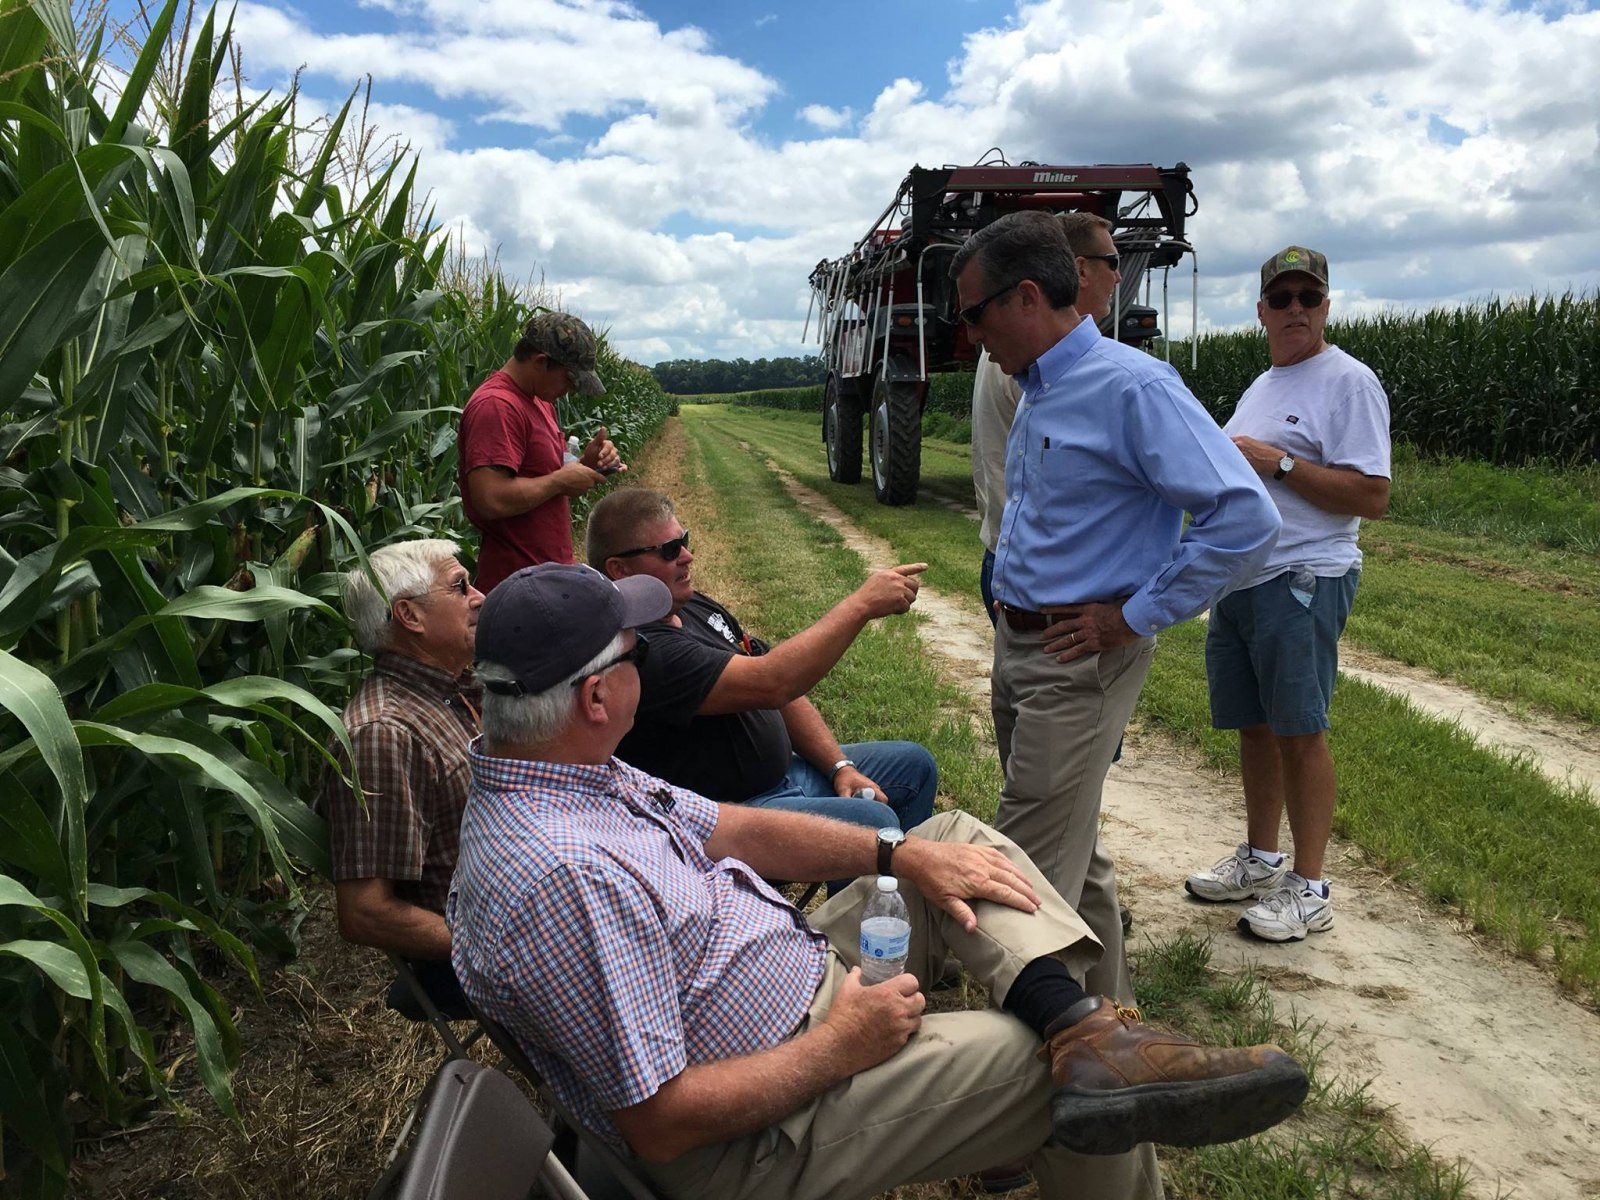 Governor Carney visits a Soil Health Field Day in Sussex County